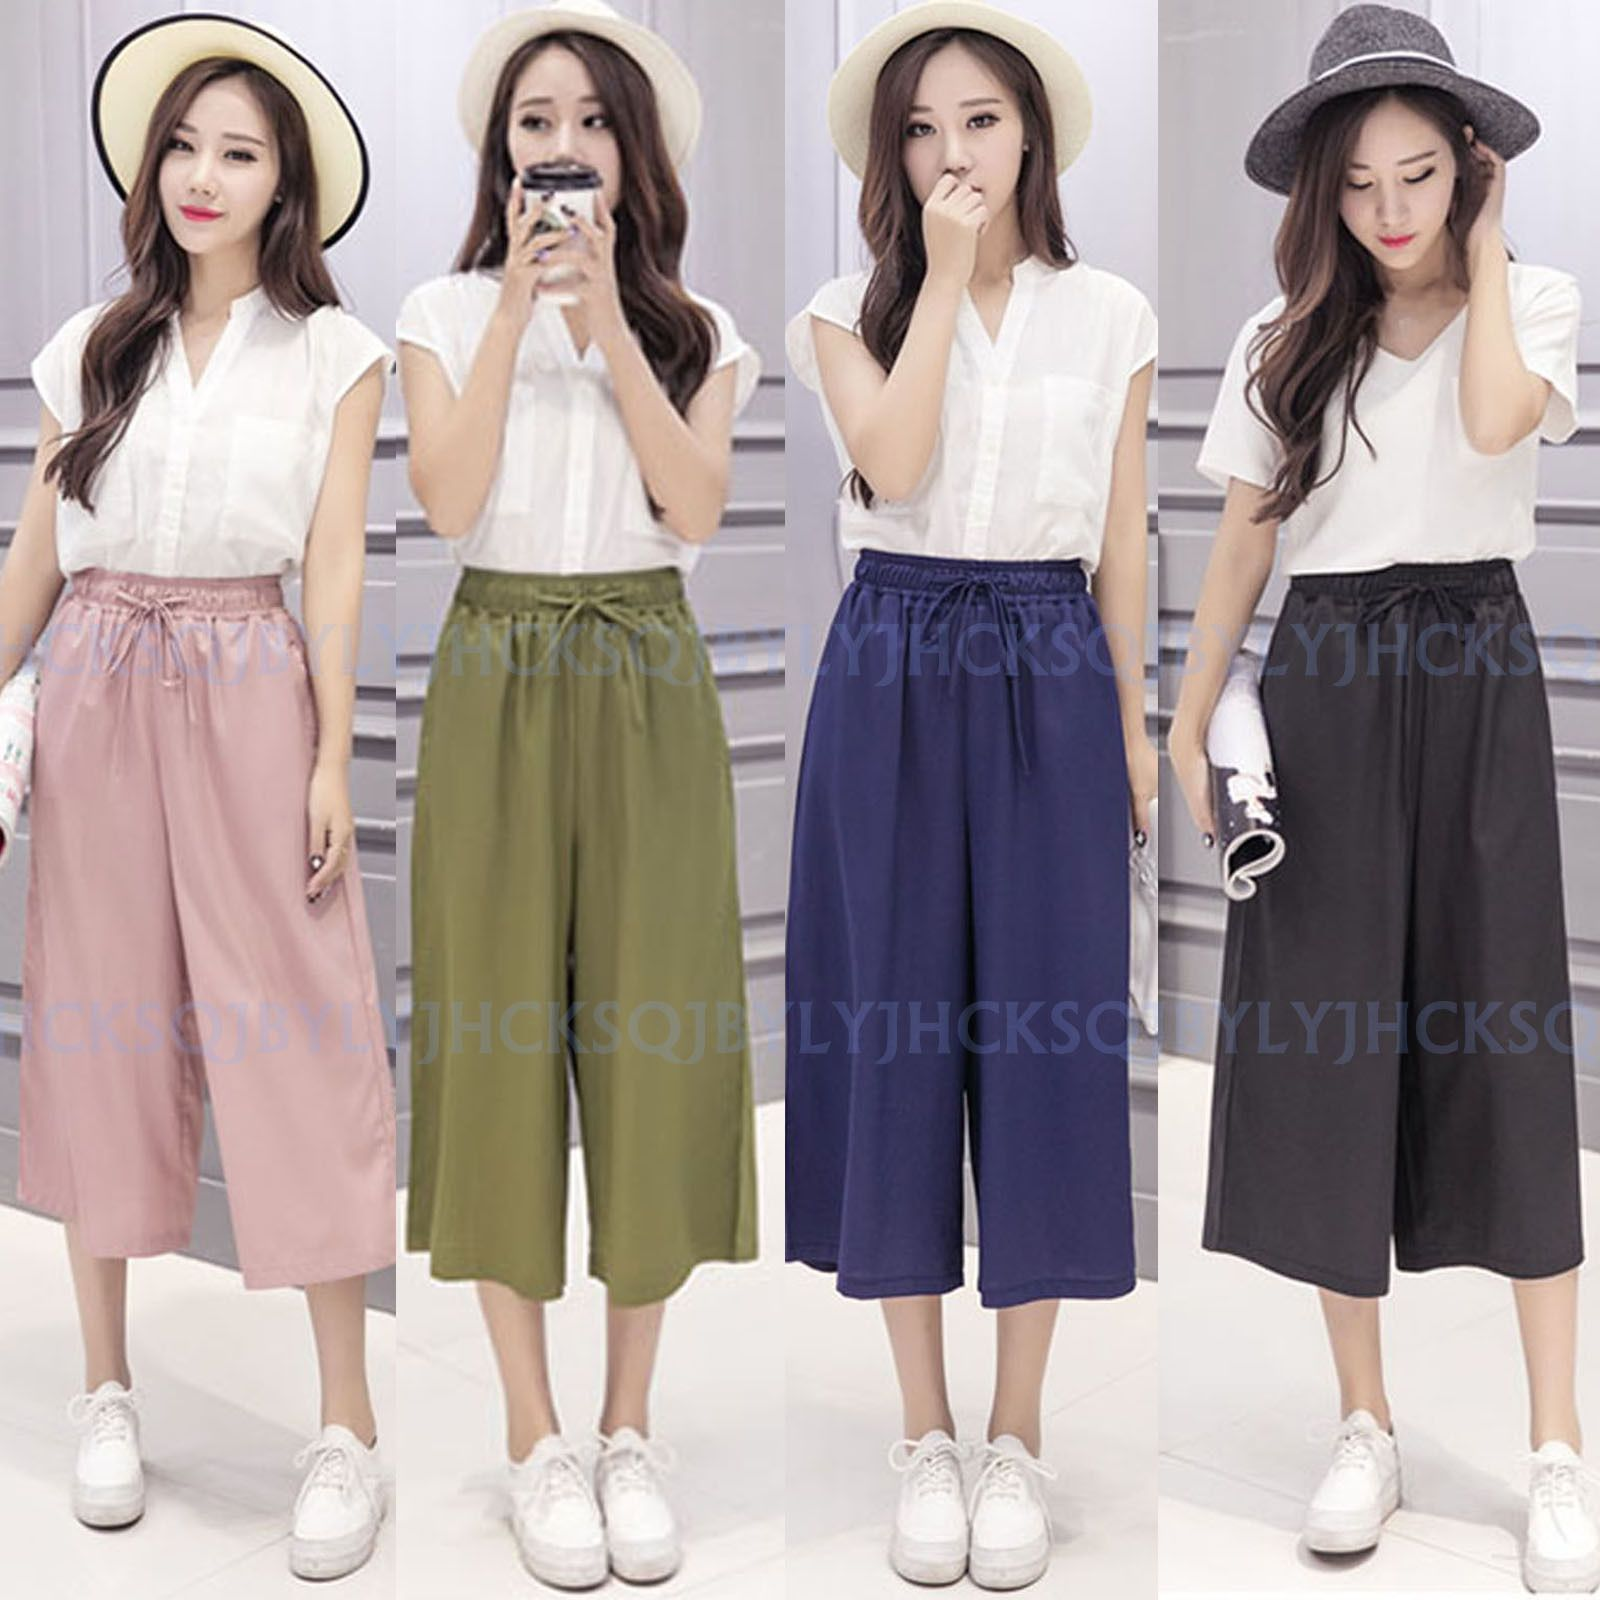 Summer Women Girls Chiffon Casual Loose Wide Leg Cropped Trousers Dress Pants Summer Trends Outfits Fashion Simple Outfits [ 1600 x 1600 Pixel ]